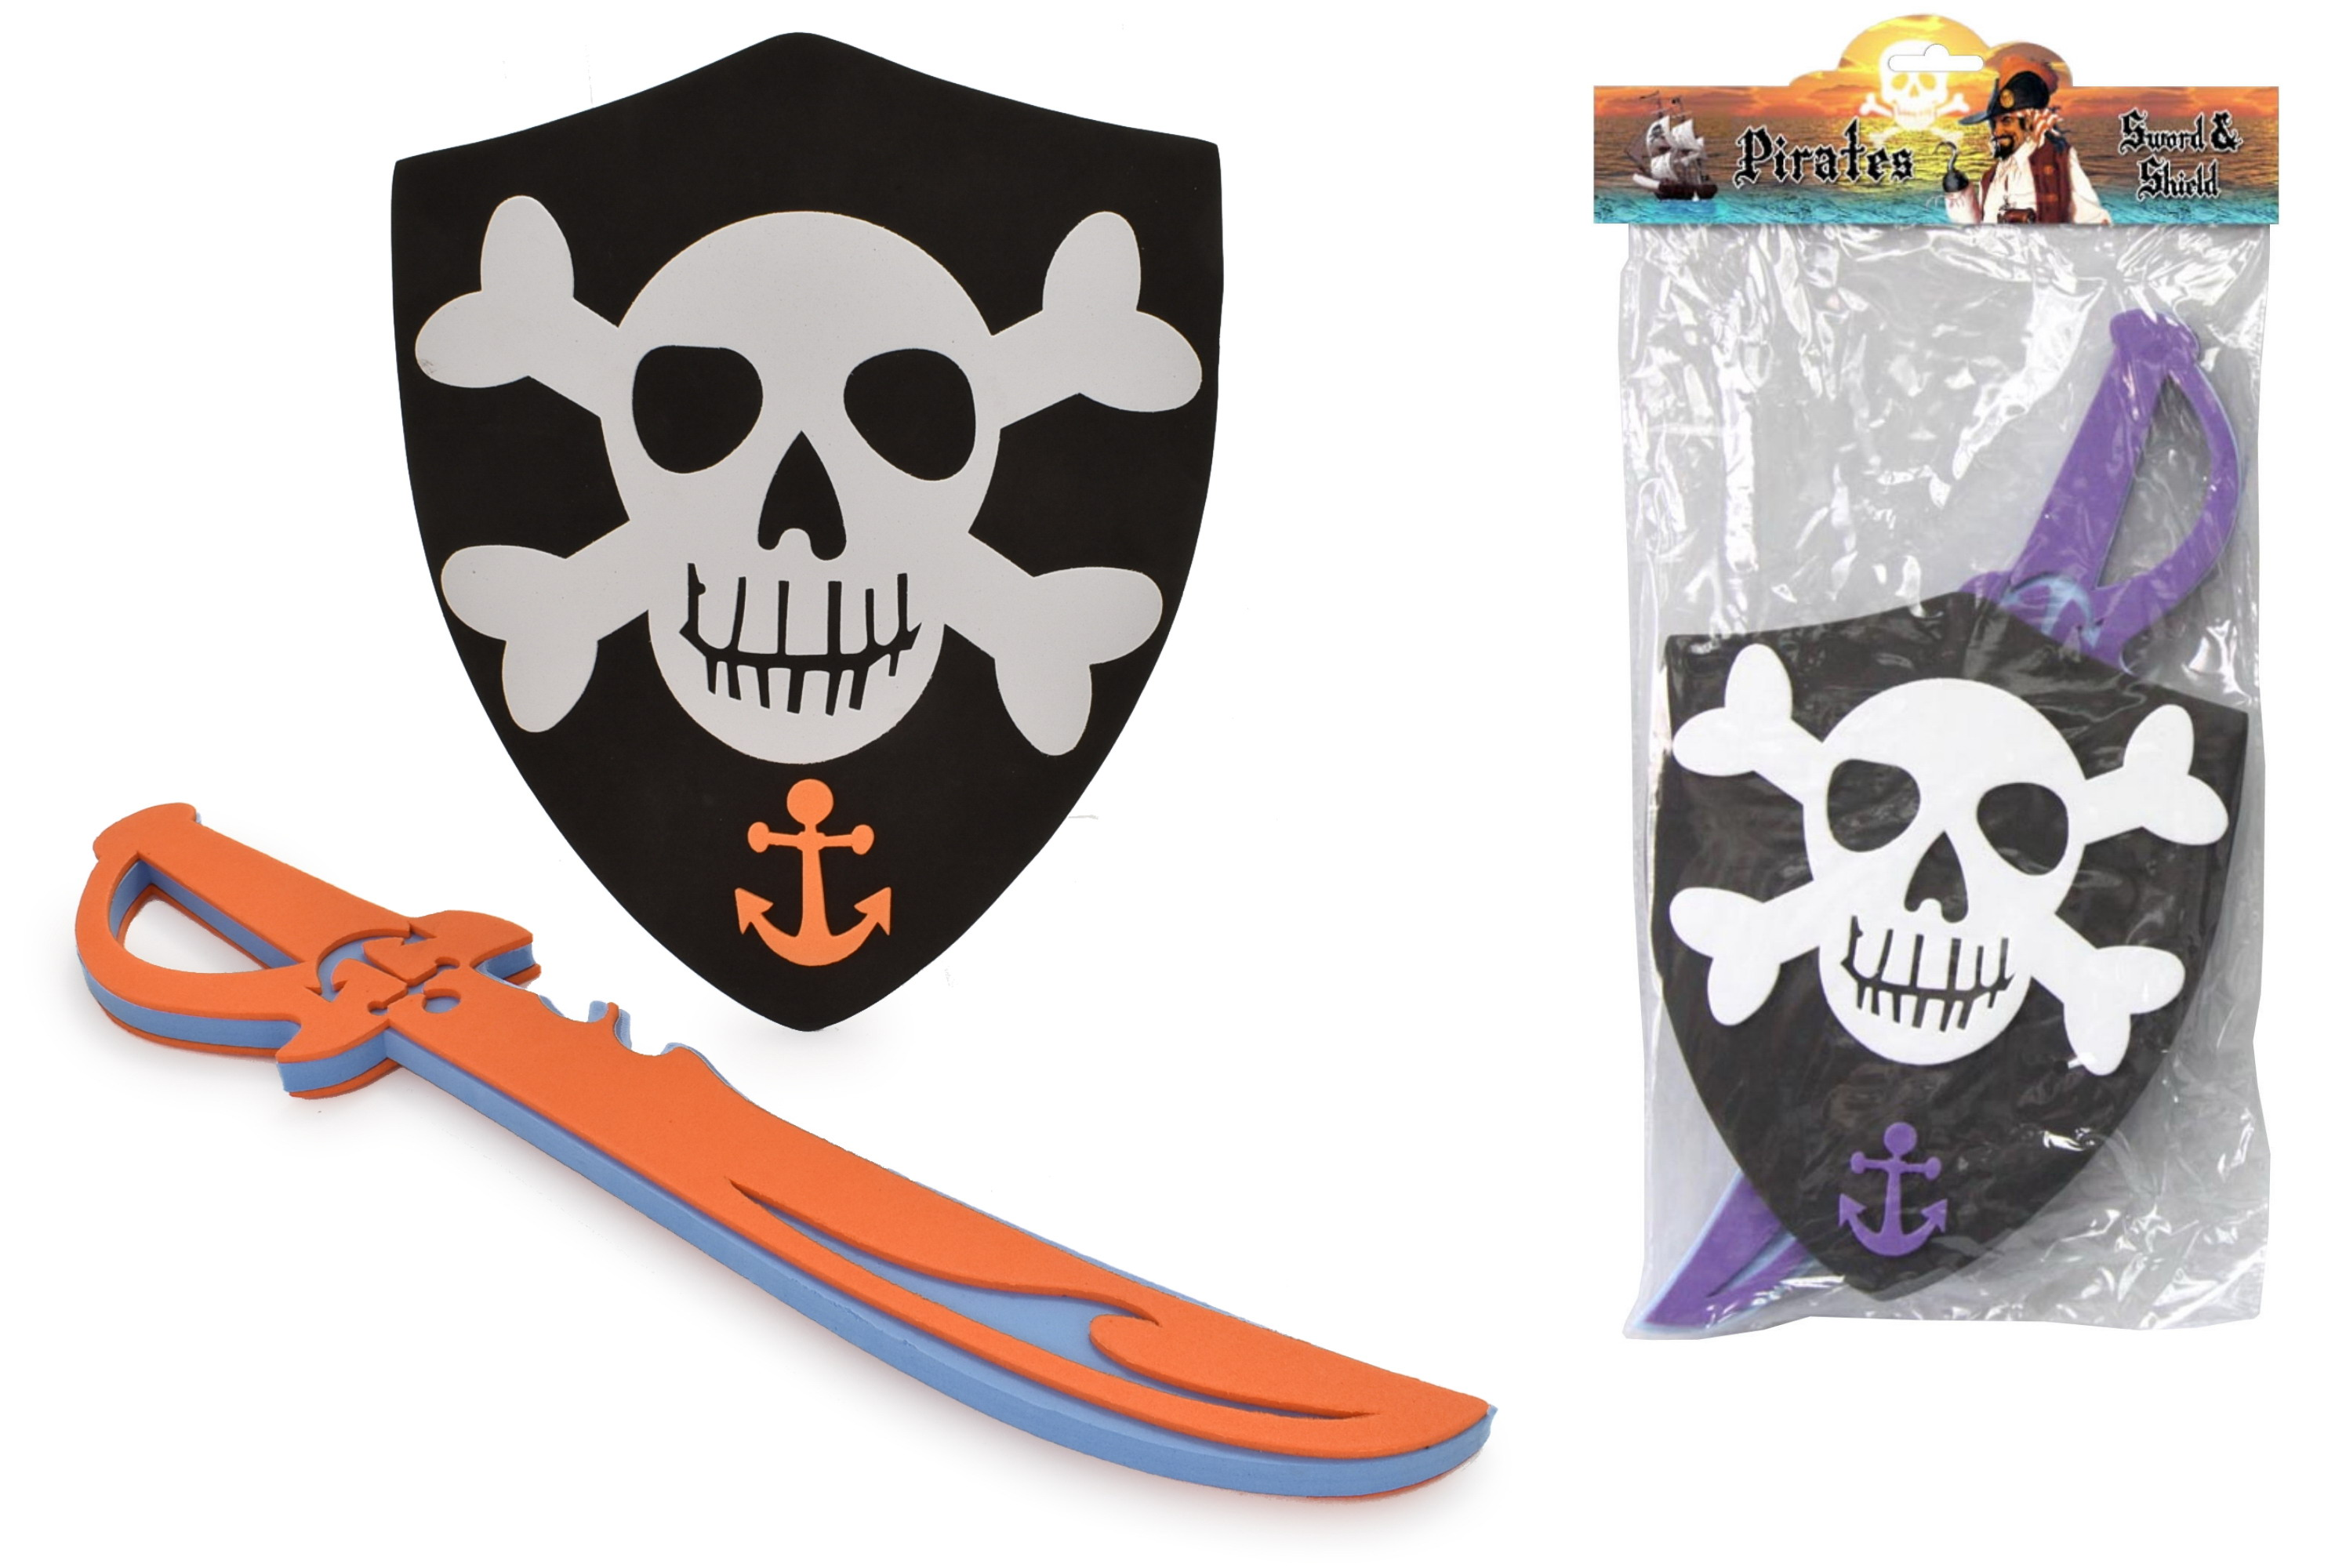 Eva Pirate Sword & Shield Playset In Pvc Bag/Header